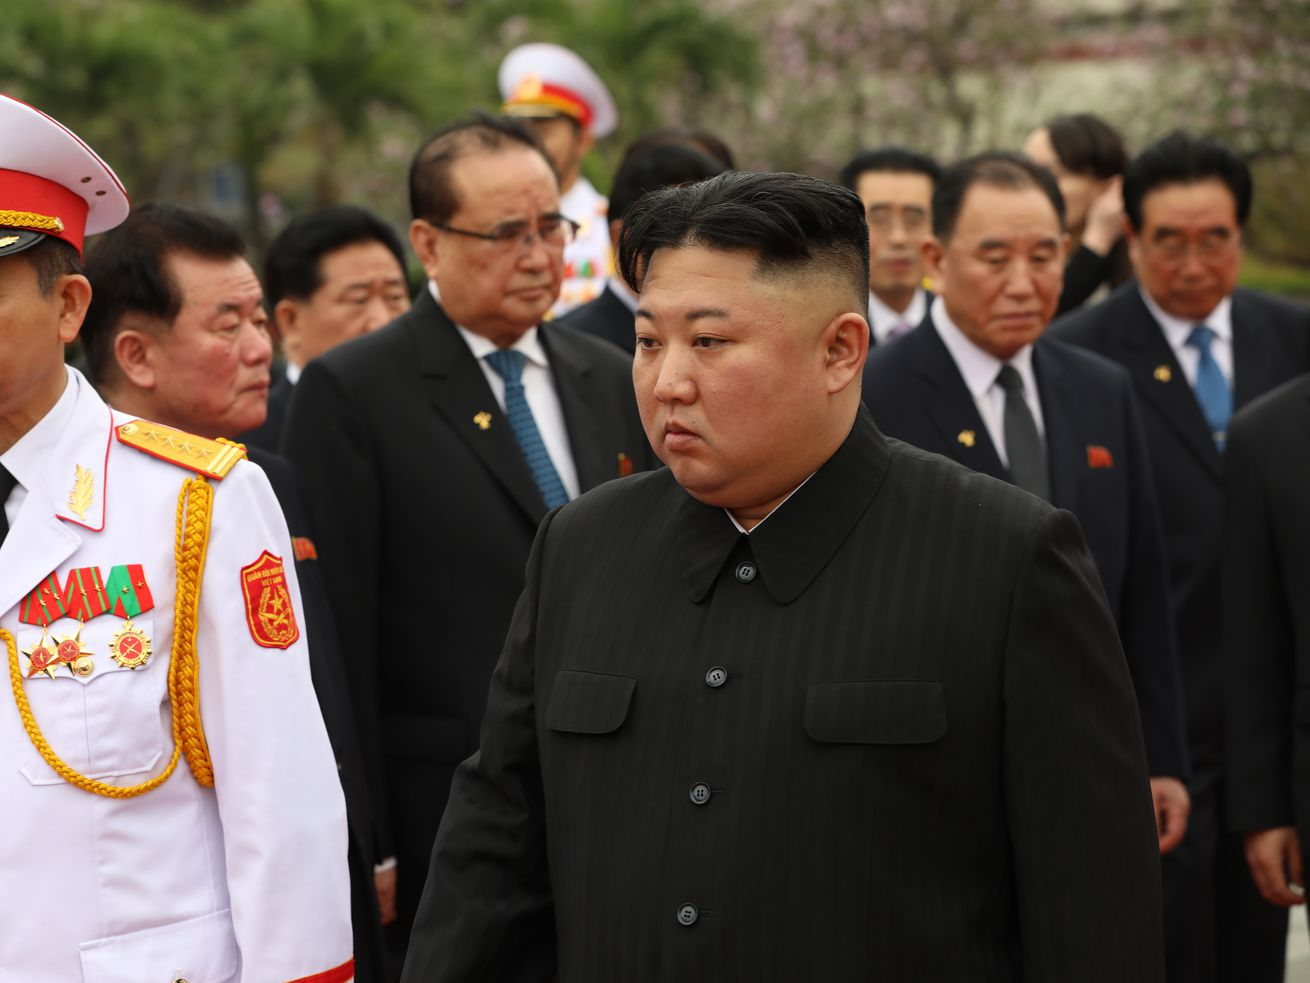 North Korea just threatened to end talks with US and restart weapons testing